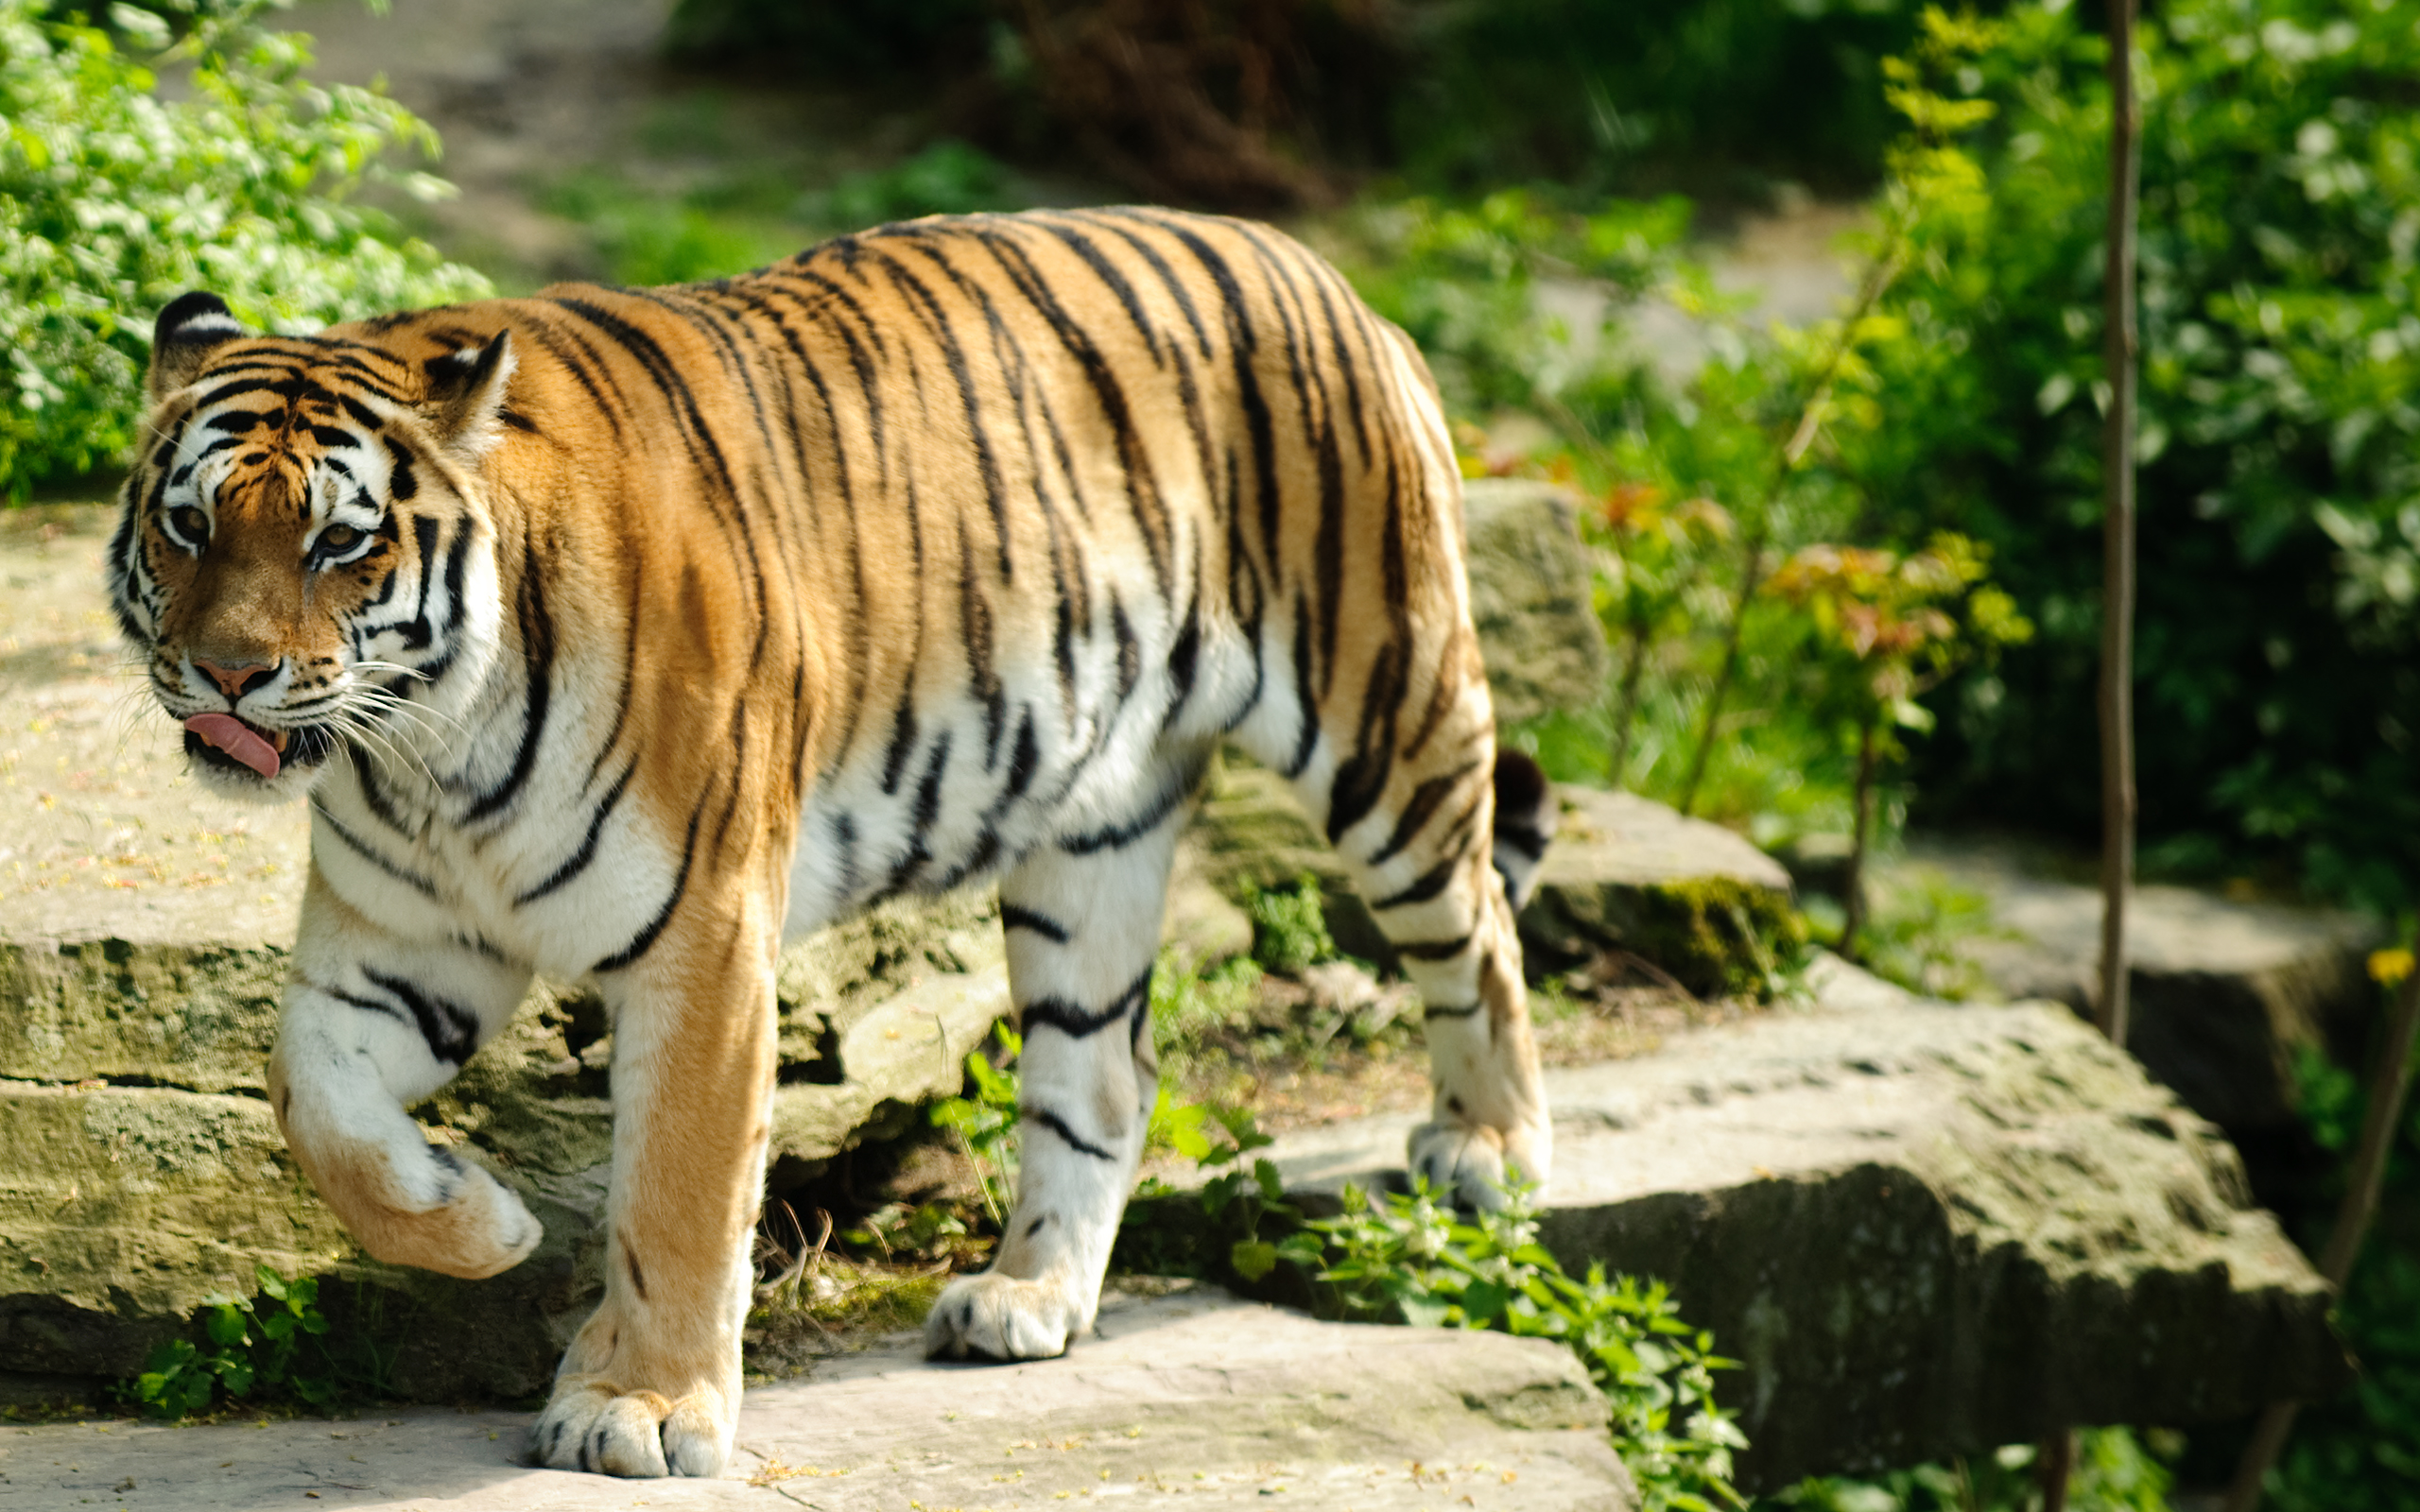 Tiger Day starts an Avaaz petition to close Chinese tiger farms